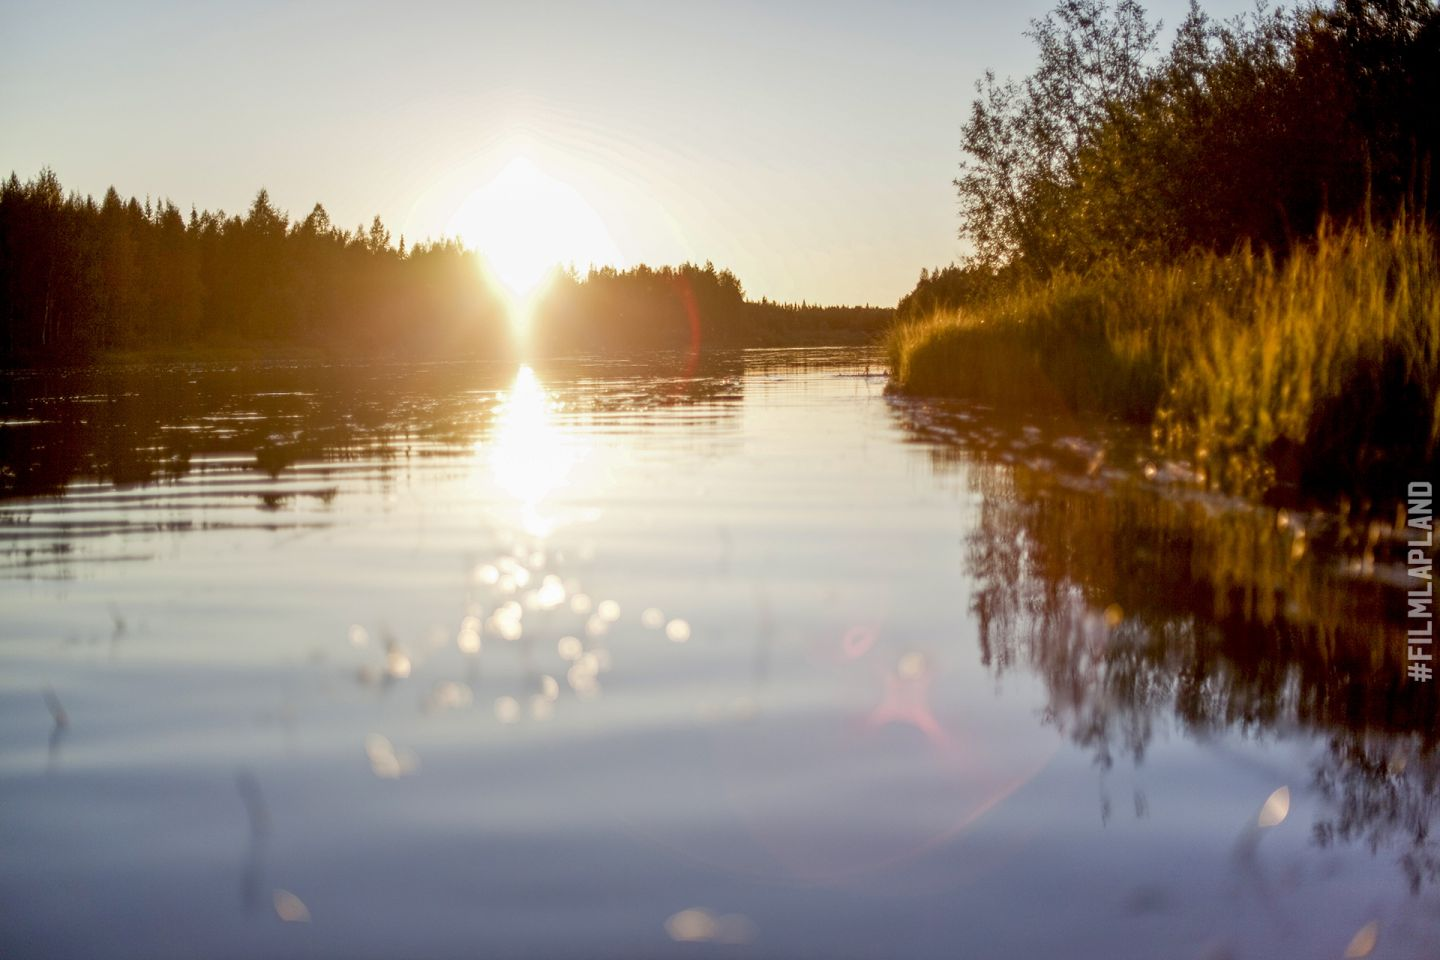 Sunset over a shimmering lake in Sodankylä, Finland